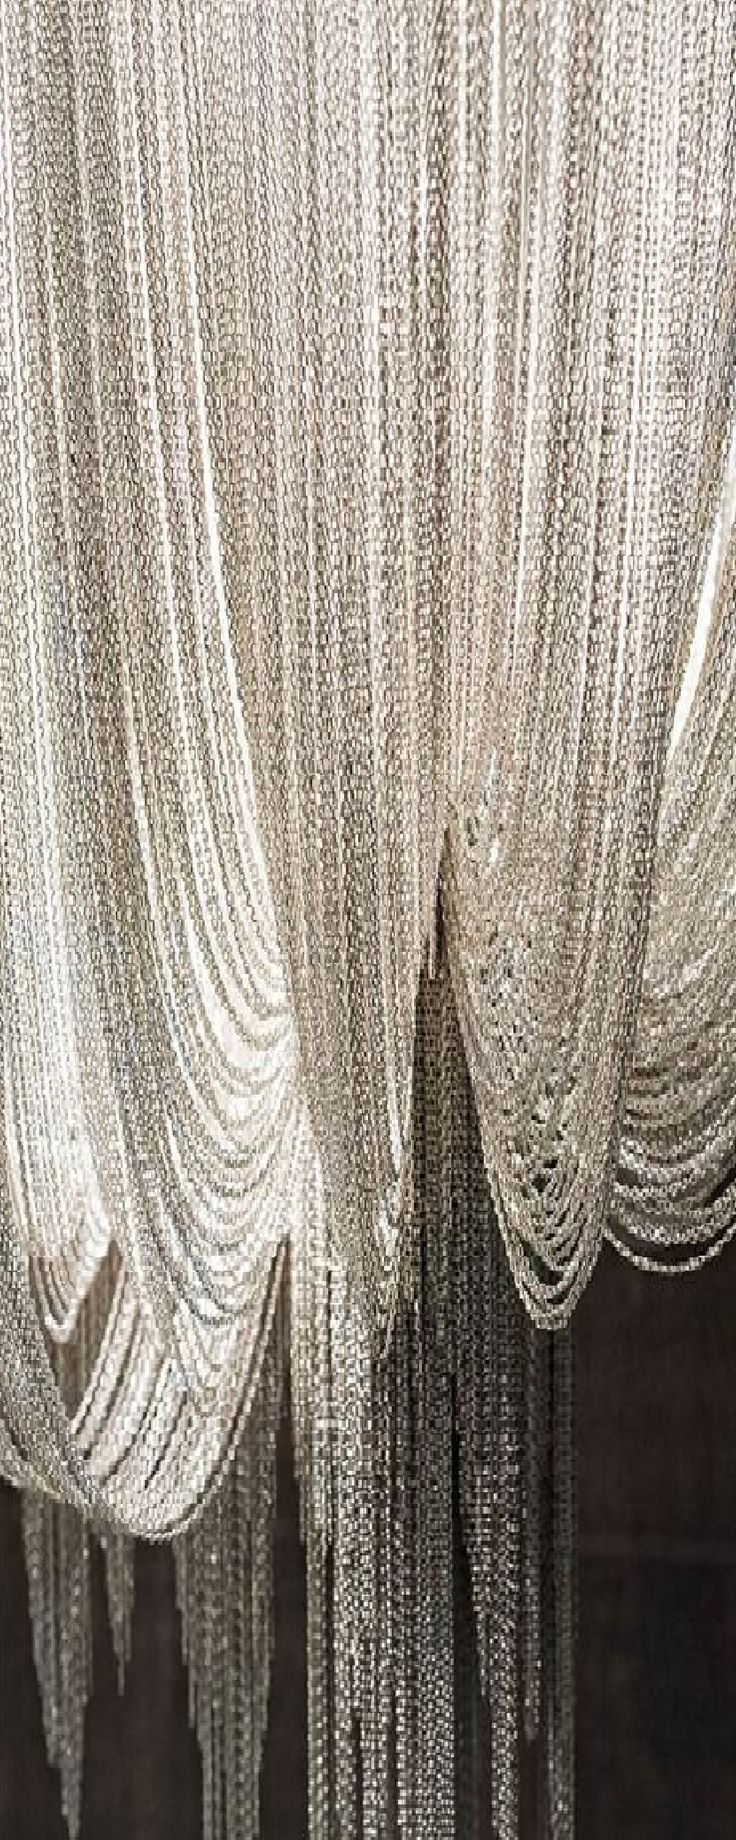 Frivolous Fabulous - Silver Chain Curtain #silver #chain | this is just so fashinating in an undescribable way